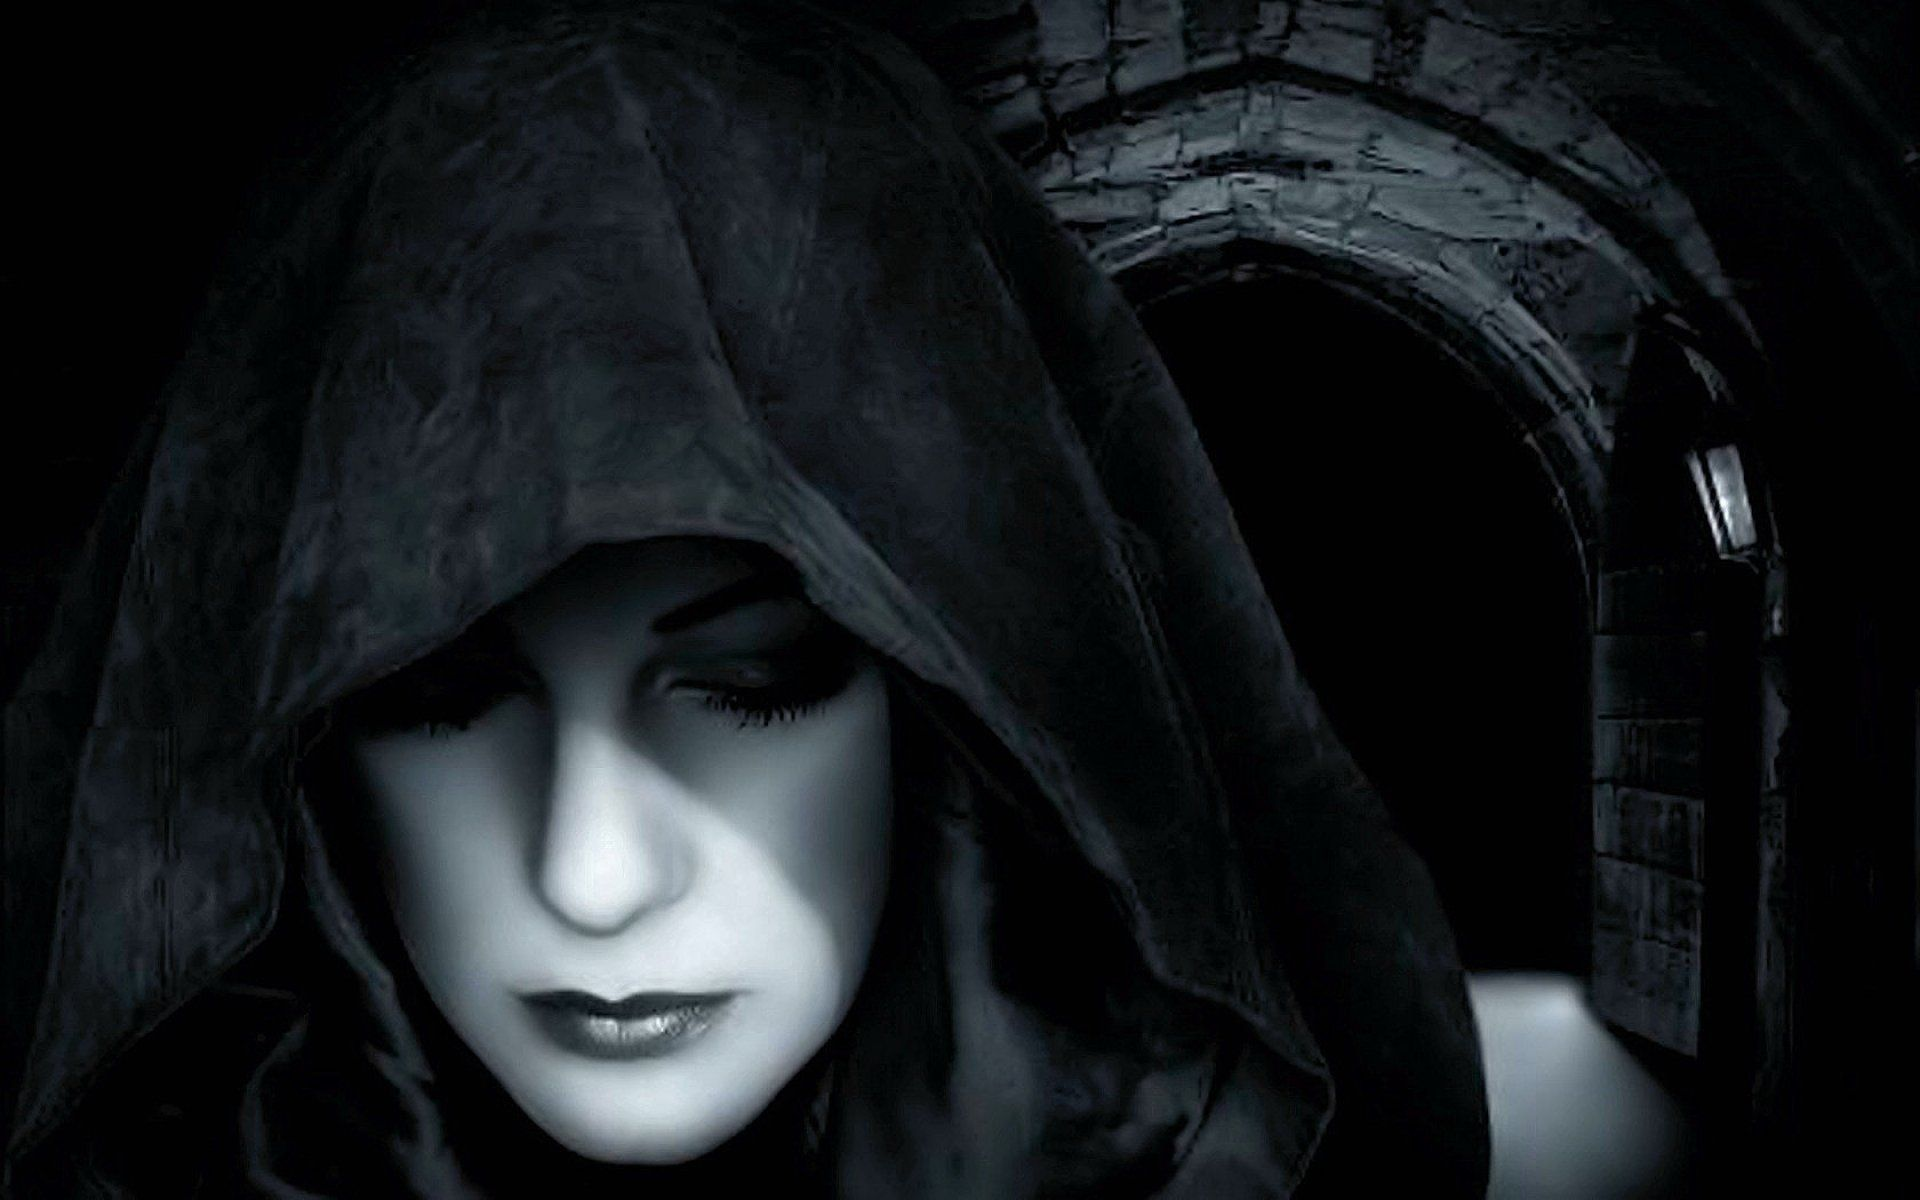 Gothic Vampire Backgrounds Pictures of Gothic Wal...